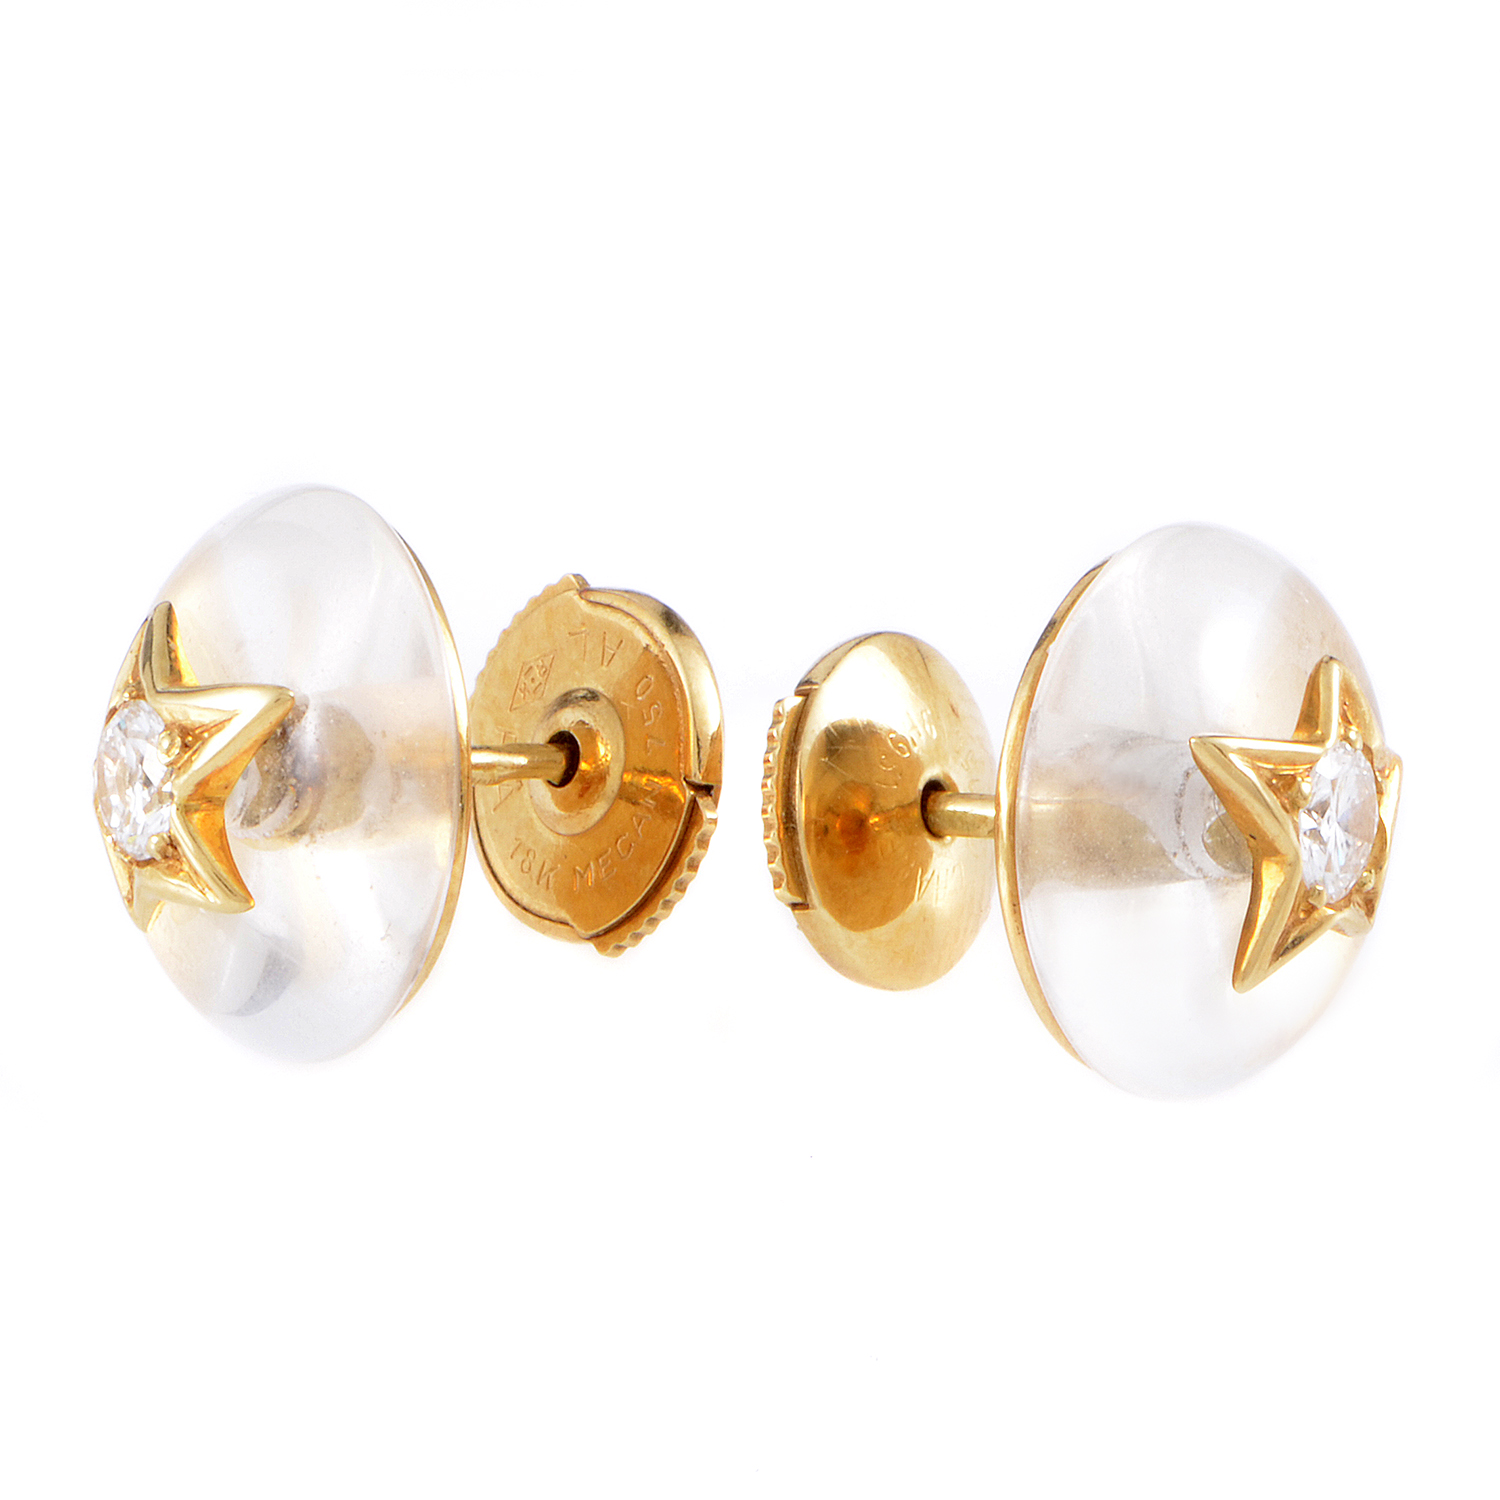 Chanel Comete 18K Yellow Gold Crystal & Diamond Stud Earrings